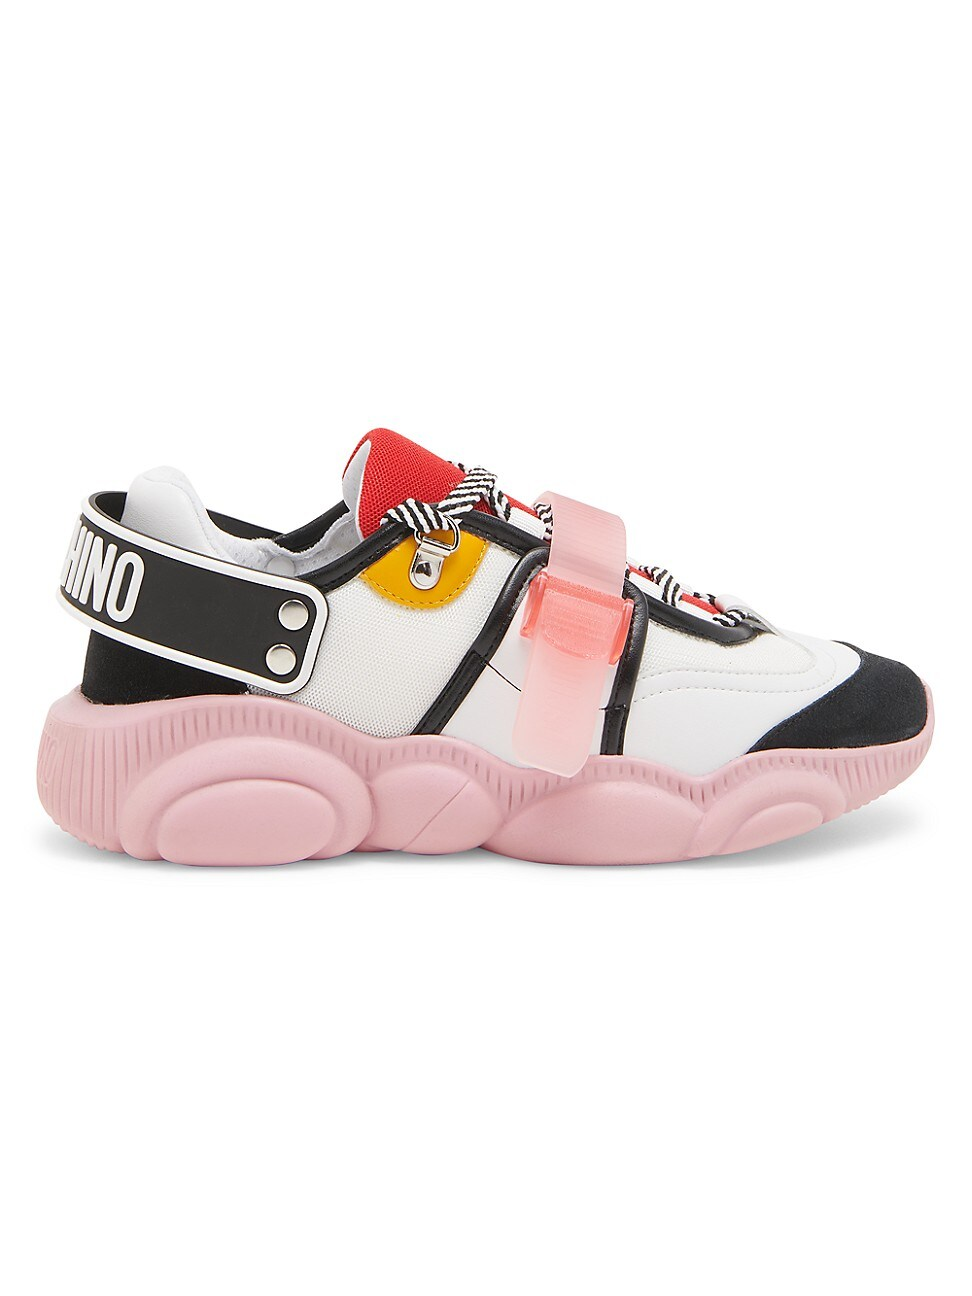 Moschino Women's Teddy Mix Media Sneakers In Black White Pink